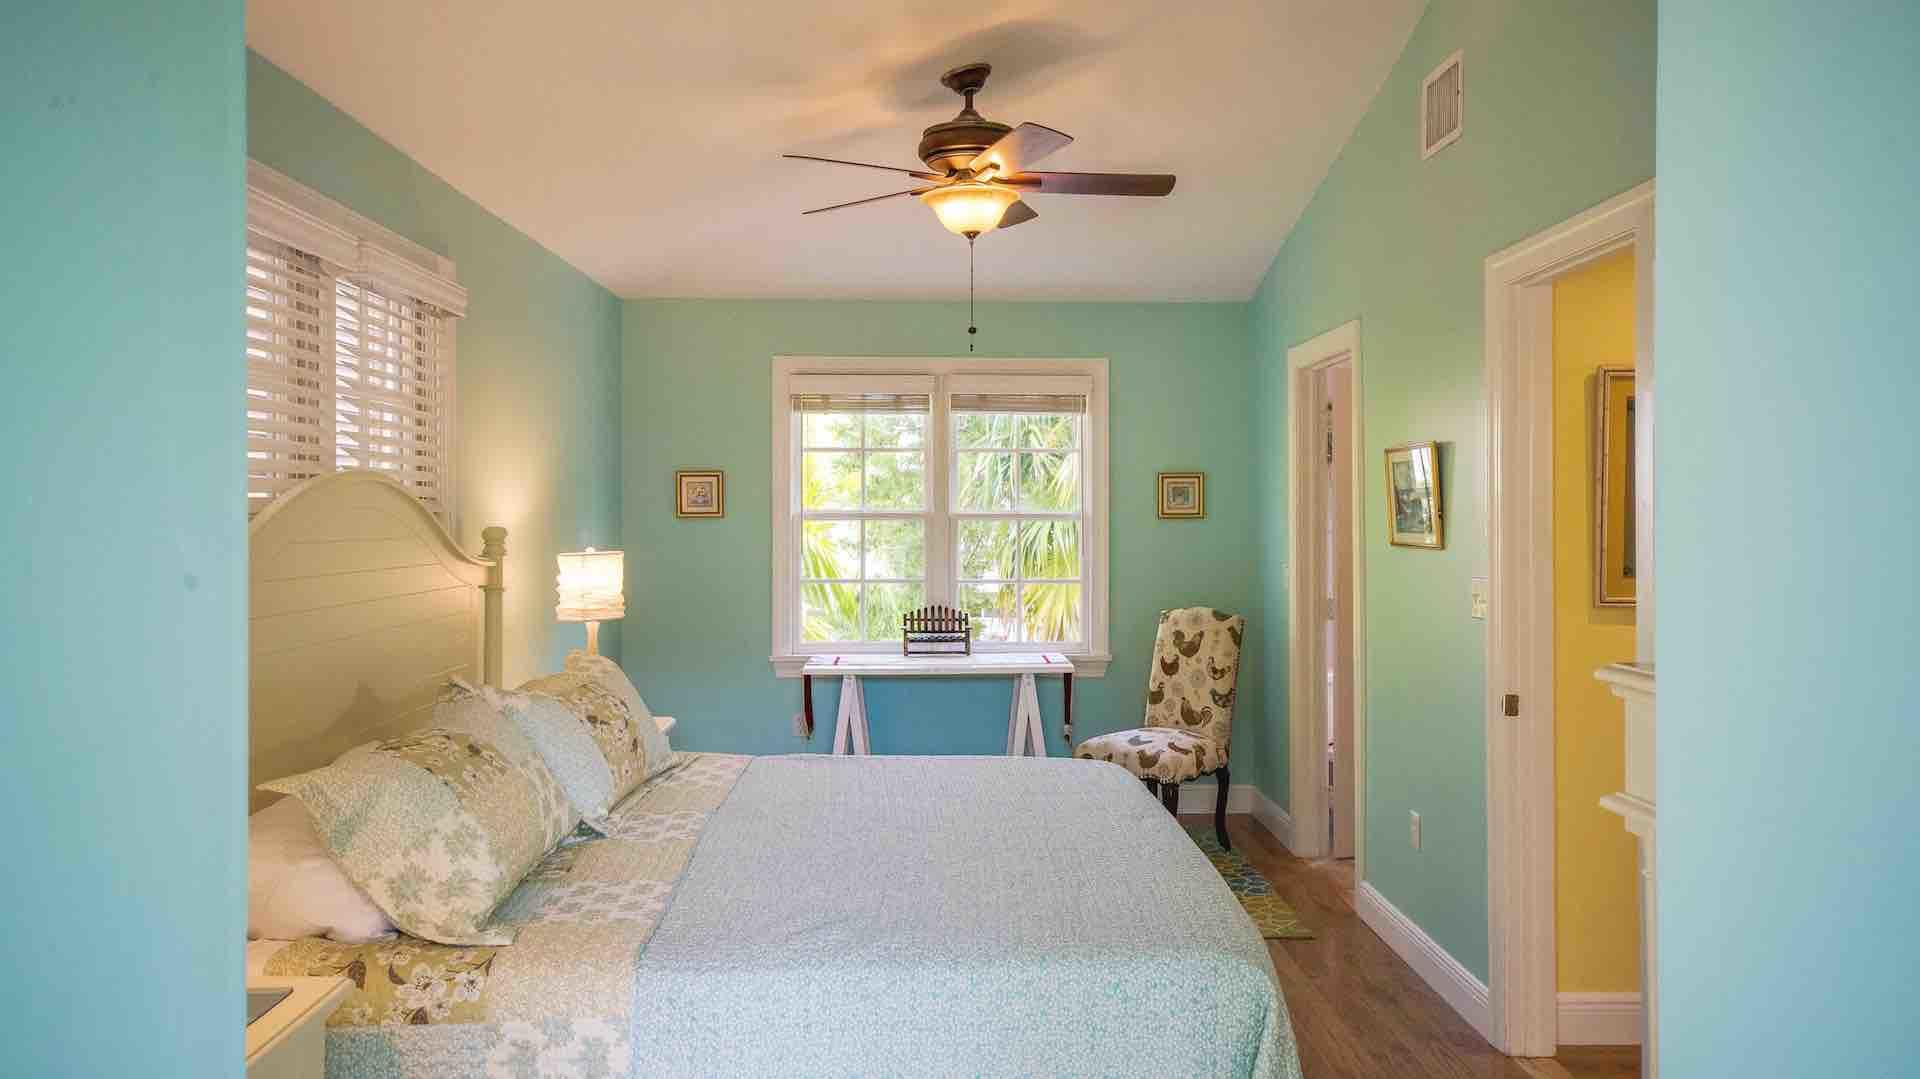 The first master bedroom has a vaulted ceiling and desk space...